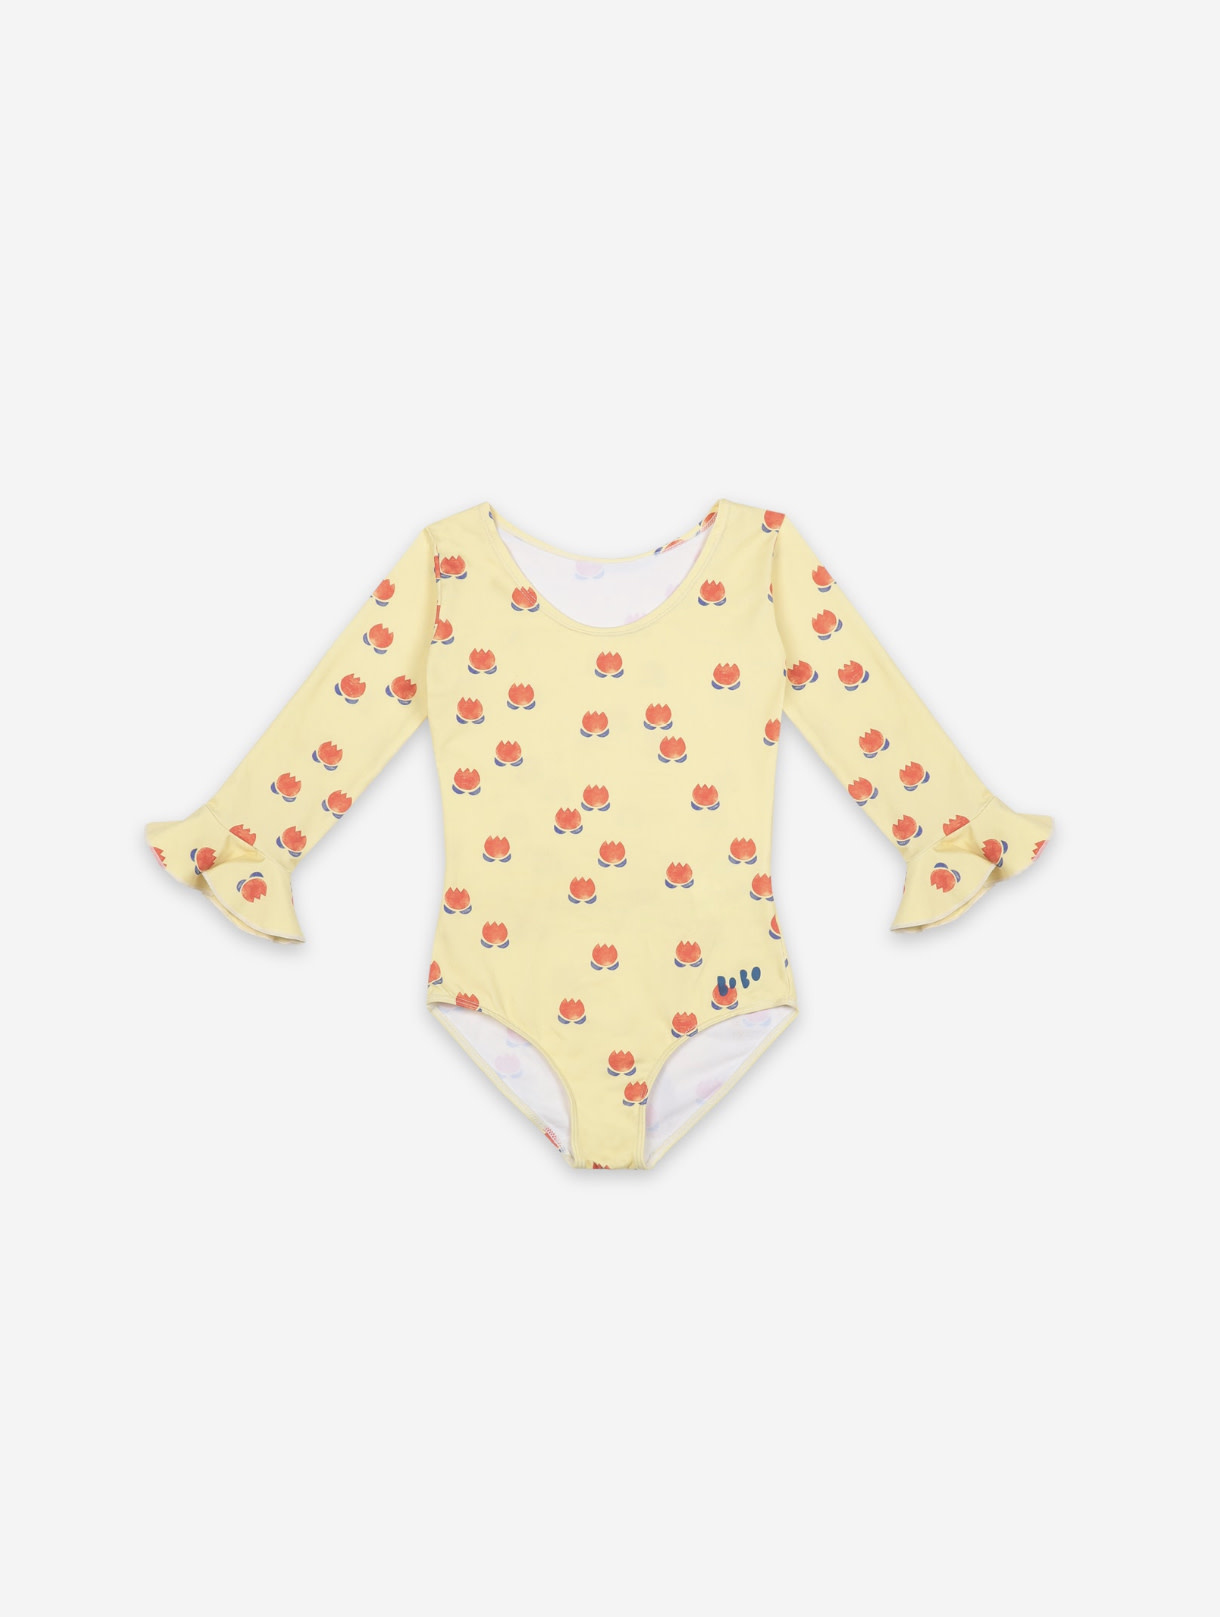 BOBO CHOSES Chocolate Flowers All Over Swimsuit